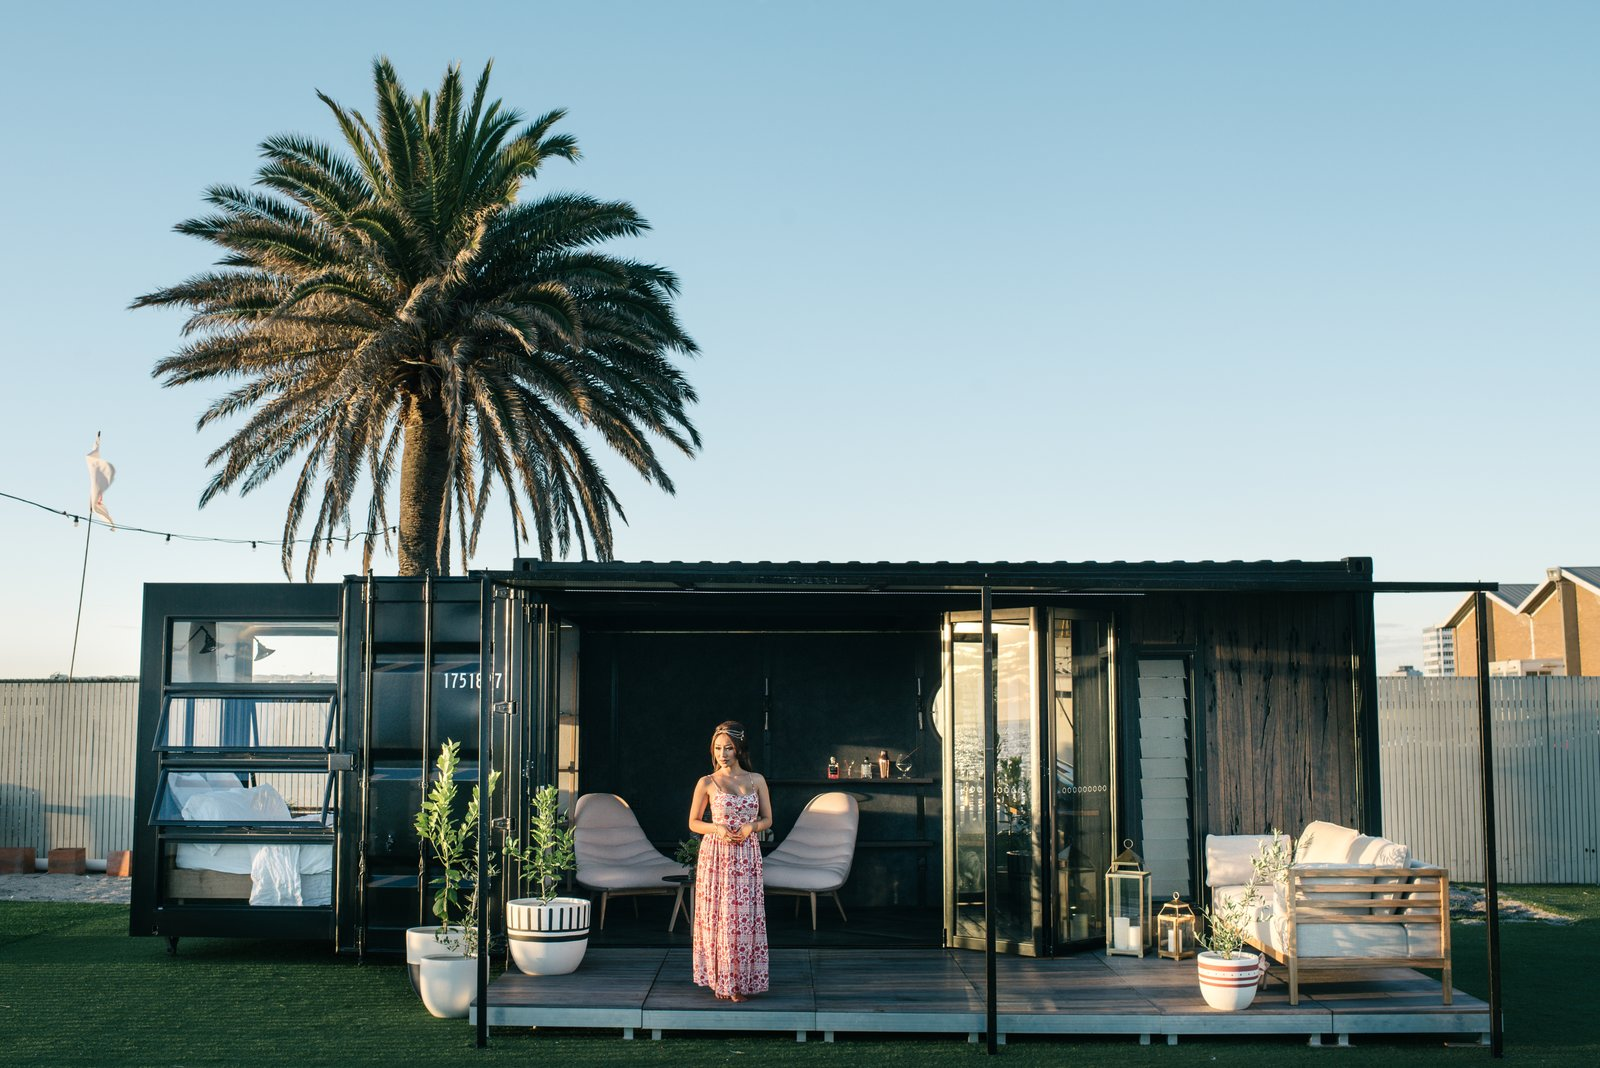 Contained shipping container hotel